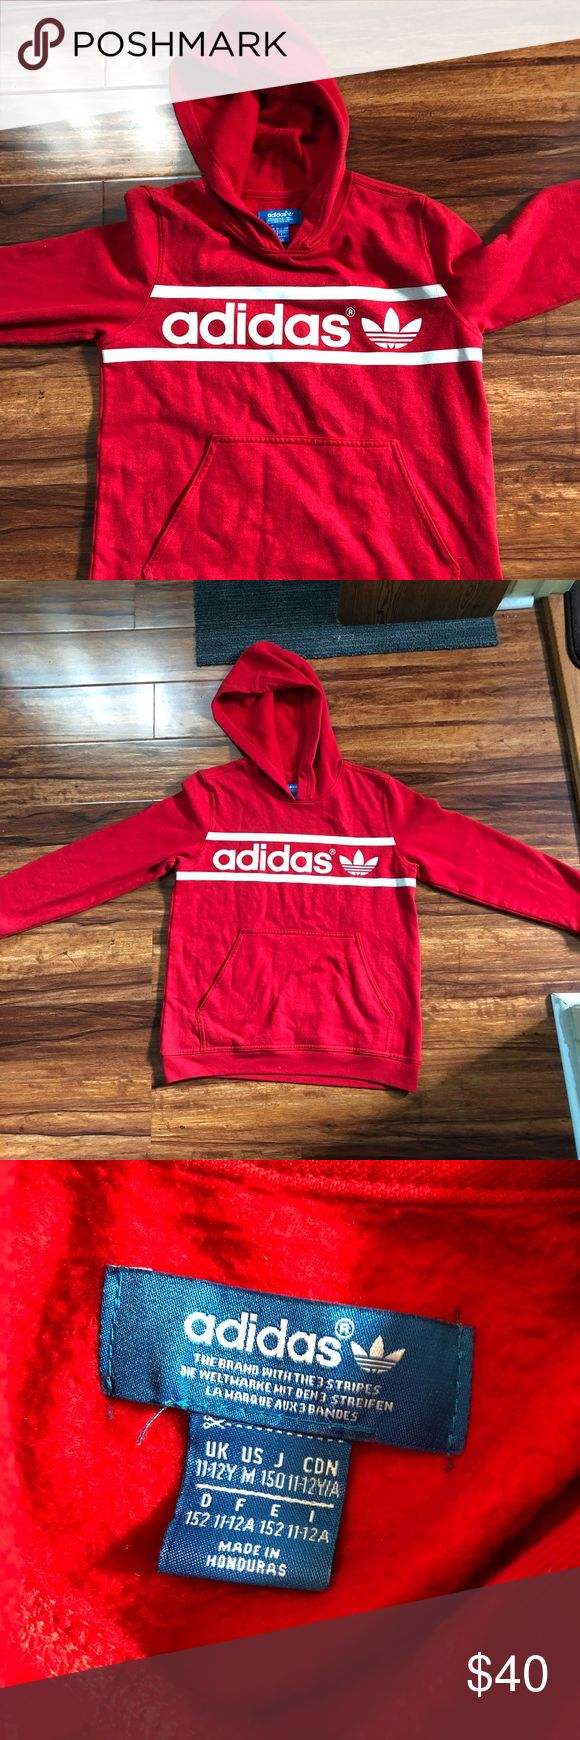 Red adidas hoodie for kids Used only once Looks brand new   Size 11-12 y Or size M in youth Fast shipping adidas Jackets & Coats